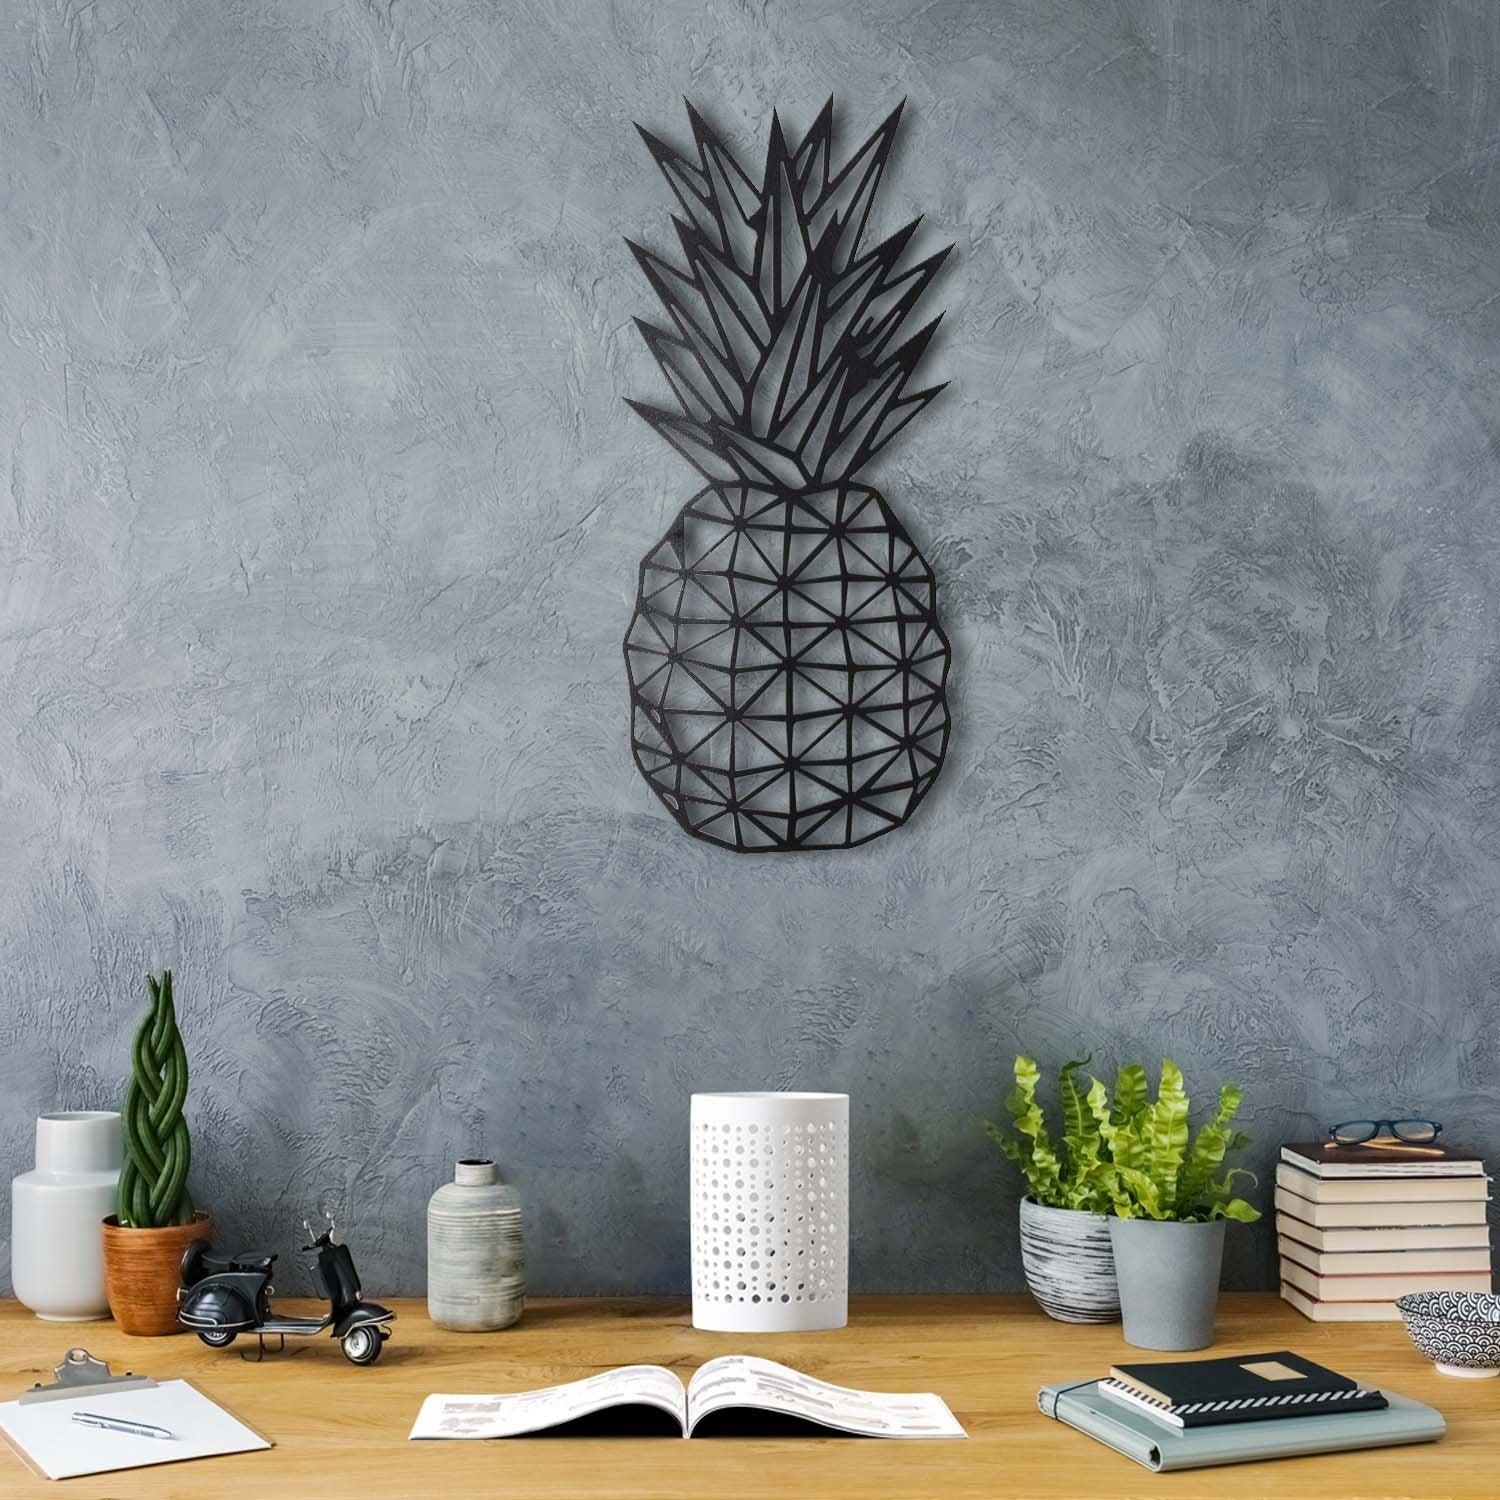 Bystag Metal Decorative Wall art pineapple-wall art-metal wall art-metal decor-housewarming gift- christmas gift-wall decor-wall hangings